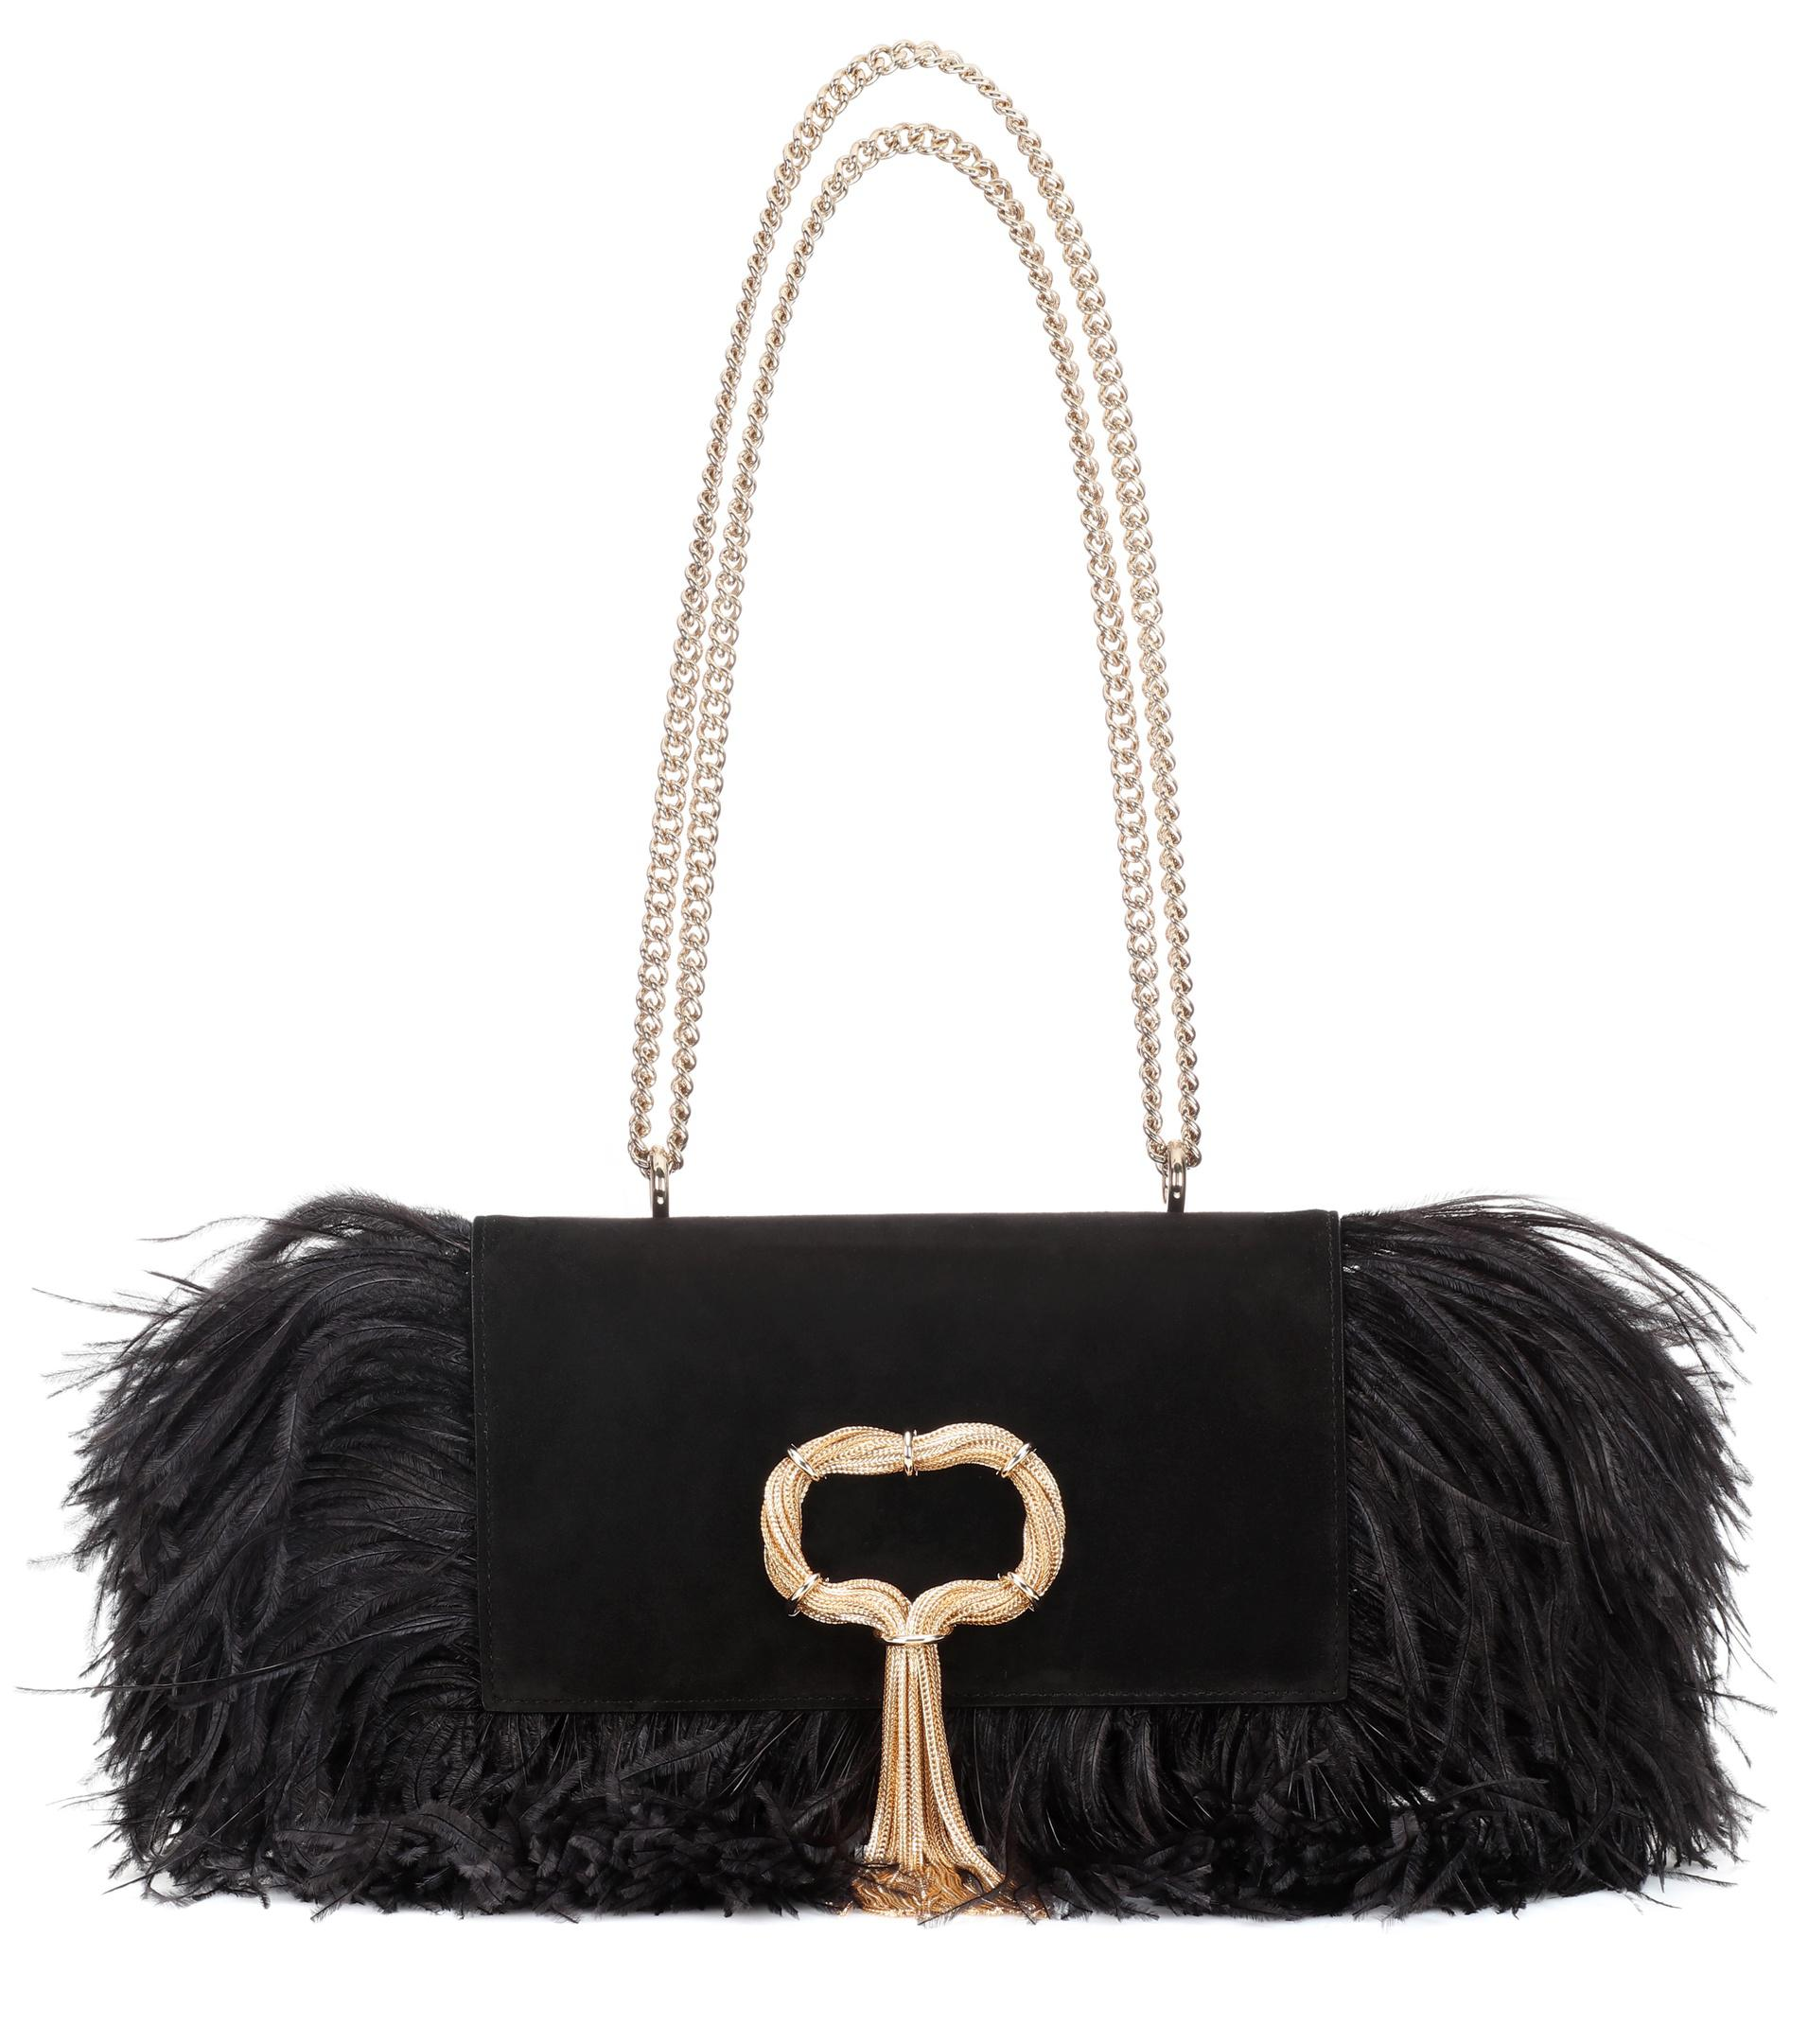 a432aee20d39 Roger Vivier Club Chain Feathers Shoulder Bag in Black - Lyst